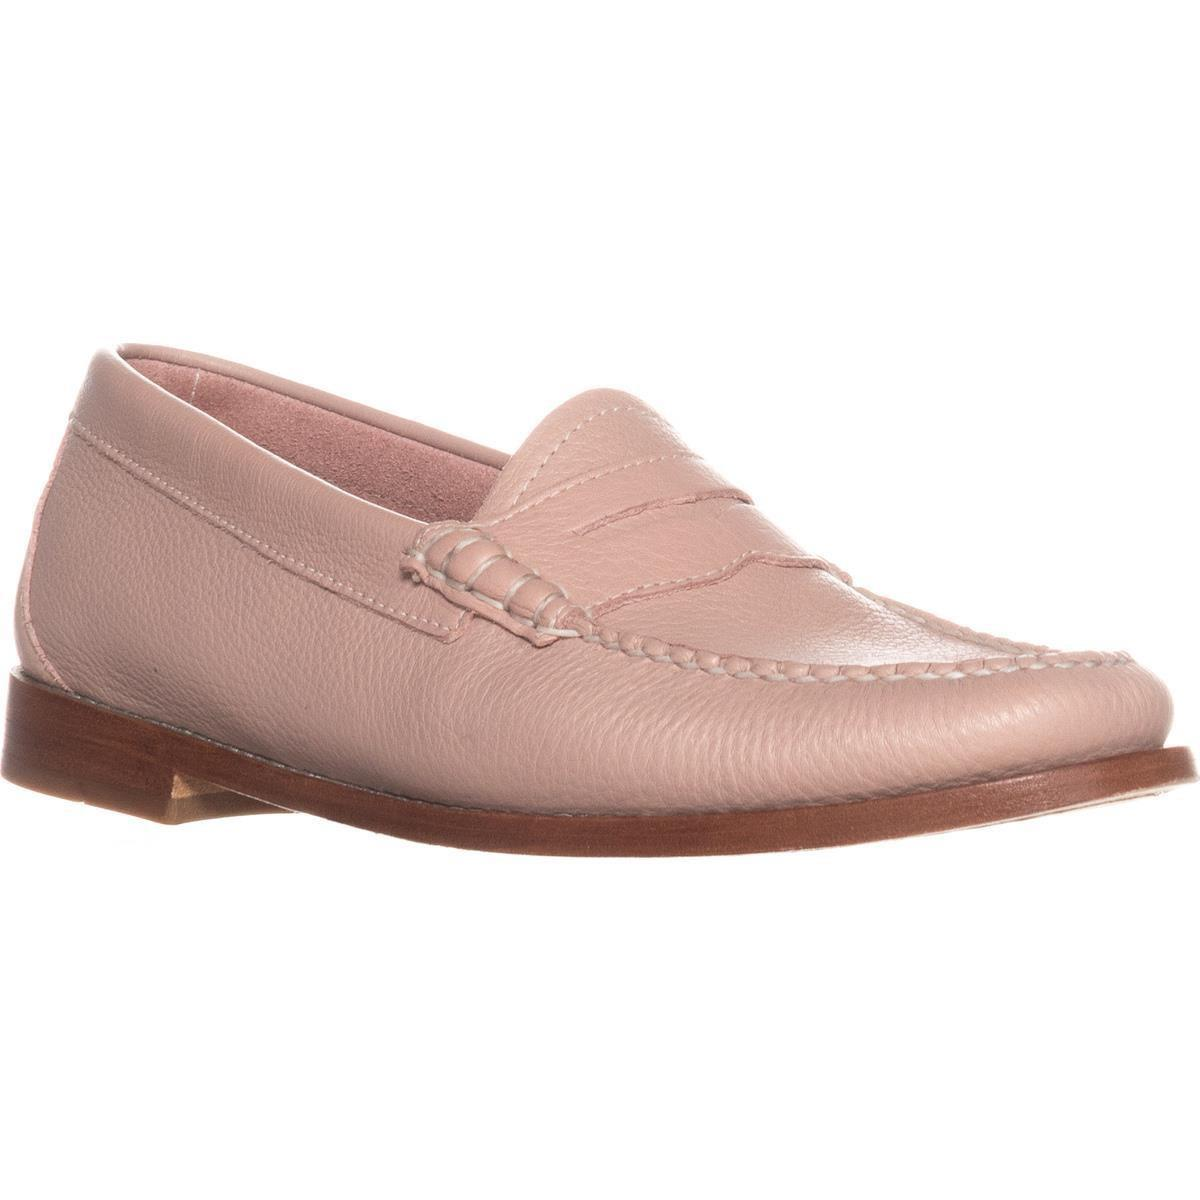 4e7ee60978e Lyst - G.H.BASS Weejuns Whitney Penny Loafers in Pink